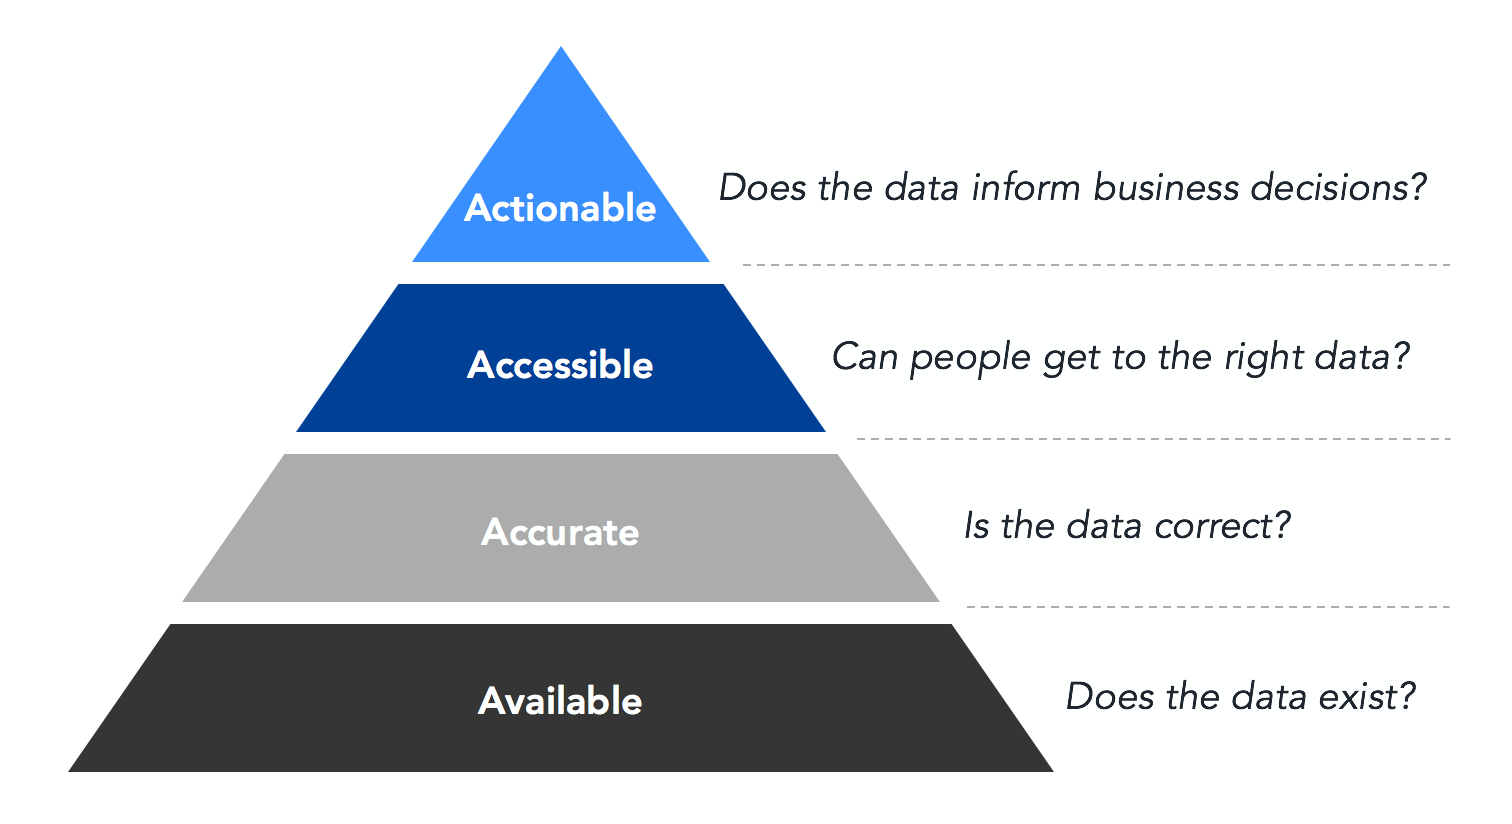 Actionable: Does the data inform business decisions? Accessible: Can people get to the right data? Accurate: Is the data correct? Available: Does the data exist?